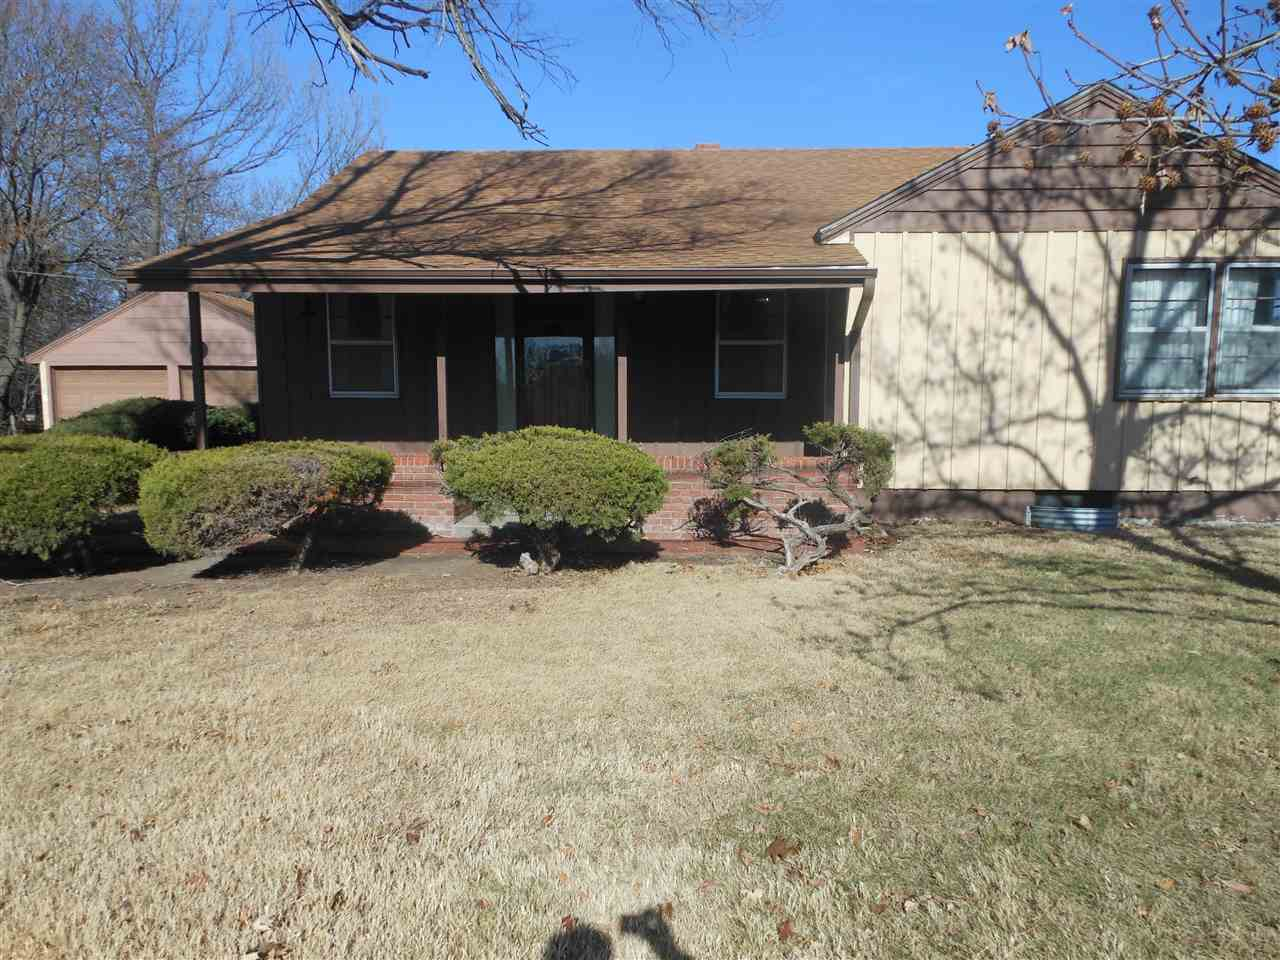 This home was previously used as a single family home with a guest quarters. But is designed and can be locked to allow for two self contained homes. There is a door between the living areas on the main floor that can be locked. Great location, seller thinks that there may be wood floors under some of the main floor carpet, buyer must confirm for sure.  New roof and guttering installed 2018, new refrigerator on west side replaced 2019. Carpet cleaned on west side unit. East side has not been lived in for many years. Electric fireplace in east living room could be moved over to the west unit. Washer dryer in basement stay with home. Two O.H. door remotes stay with the home. Lots of opportunities with this home! Seller has not lived in the home, so we do not have a Seller Property Disclosure. Partial wood fence in back yard.